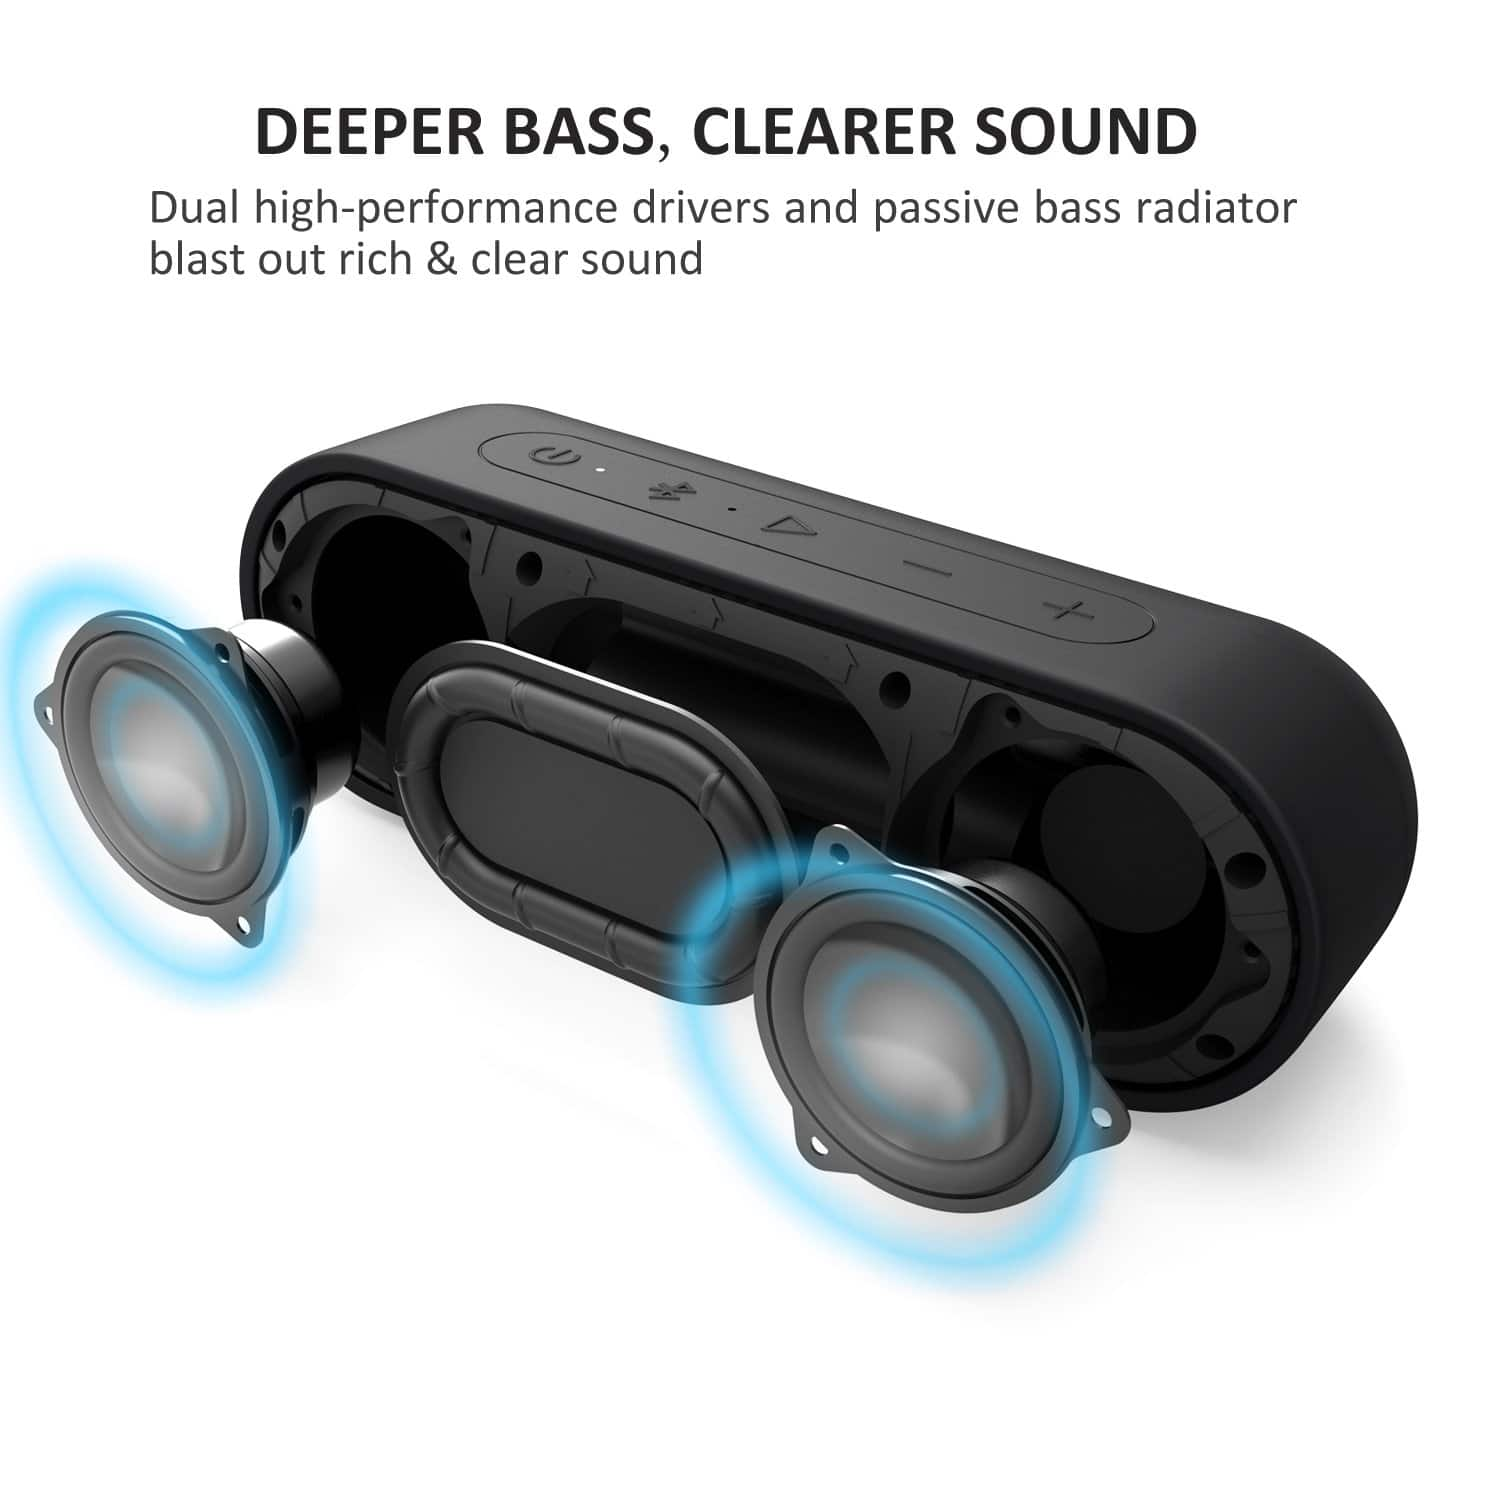 Tribit XSound Go Bluetooth Speakers - 12W Portable Speaker Loud Stereo Sound, Rich Bass, IPX7 Waterproof@Amazon.com $20.09